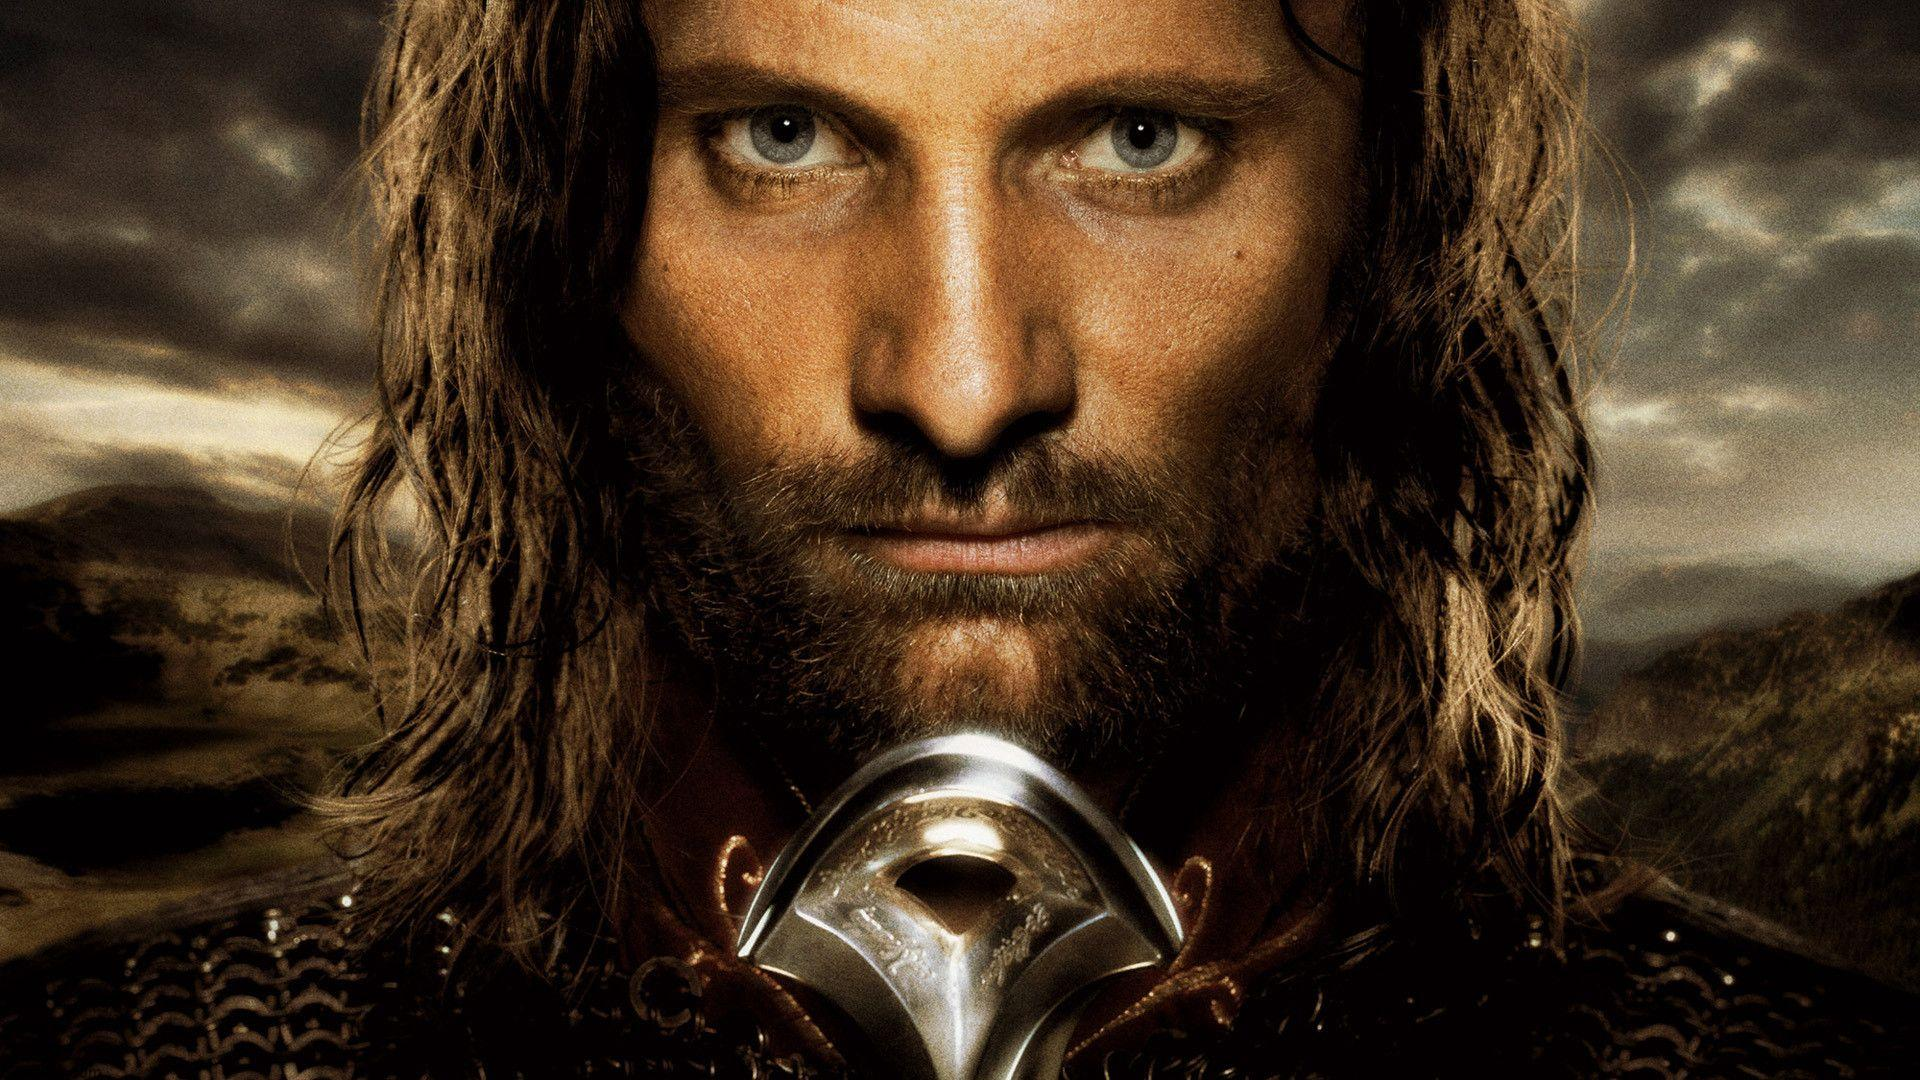 Aragorn The Lord Of The Rings Wallpaper 11 4863 Movies   bwalles 1920x1080